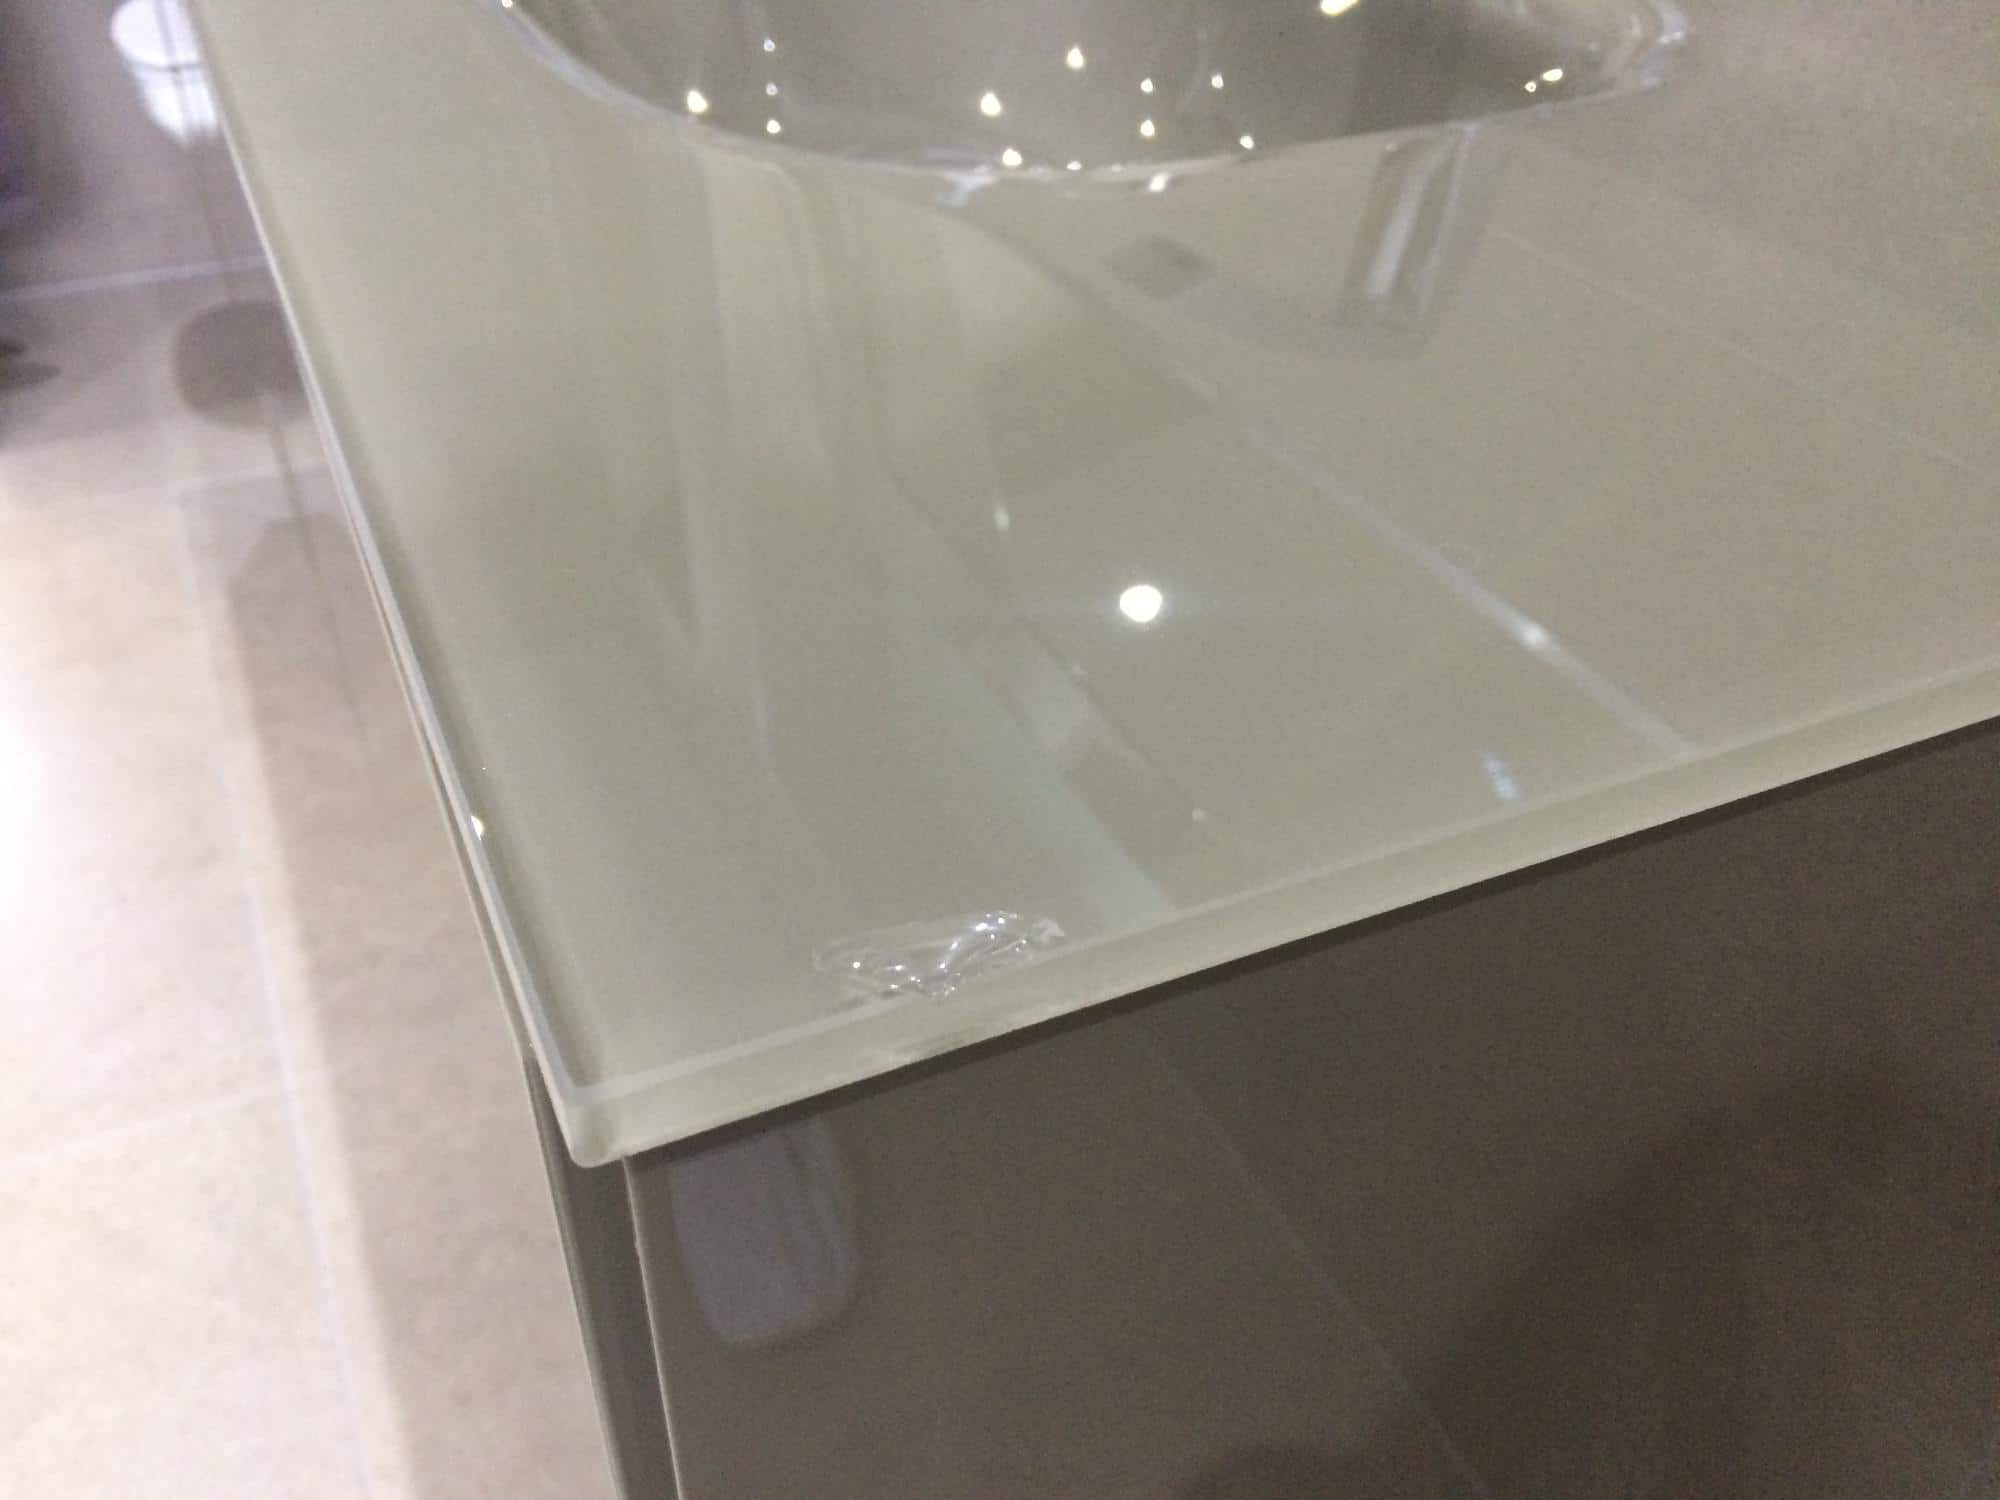 bespoke repairs ltd uk stone glass repair glass sink edge chip rh bespokerepairs com glass table repair bournemouth glass table repairs cardiff